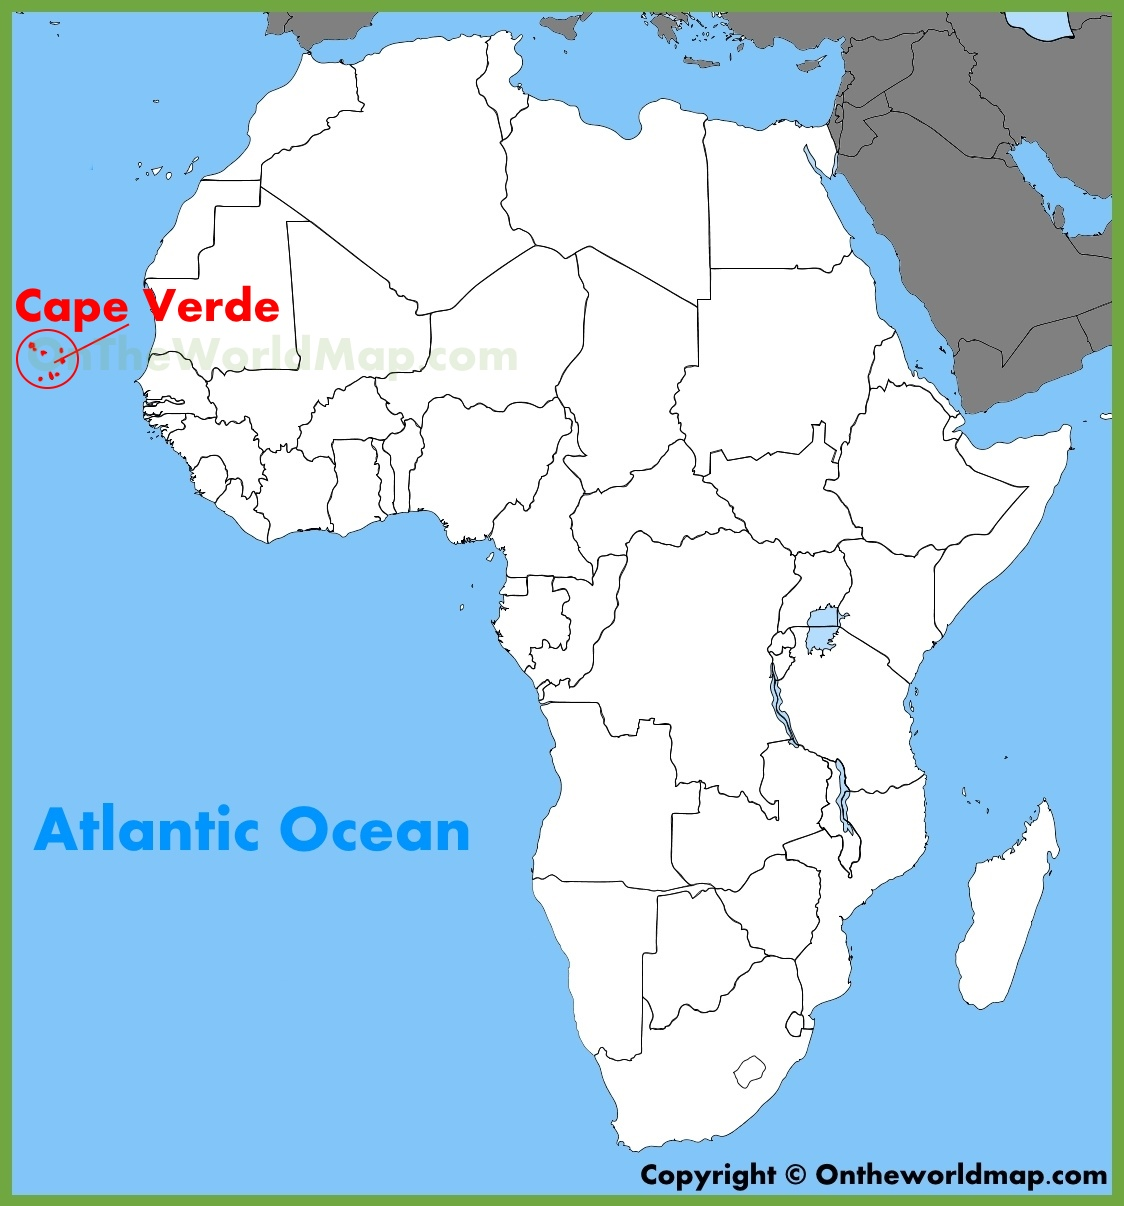 Map Of Cape Verde Cape Verde location on the Africa map